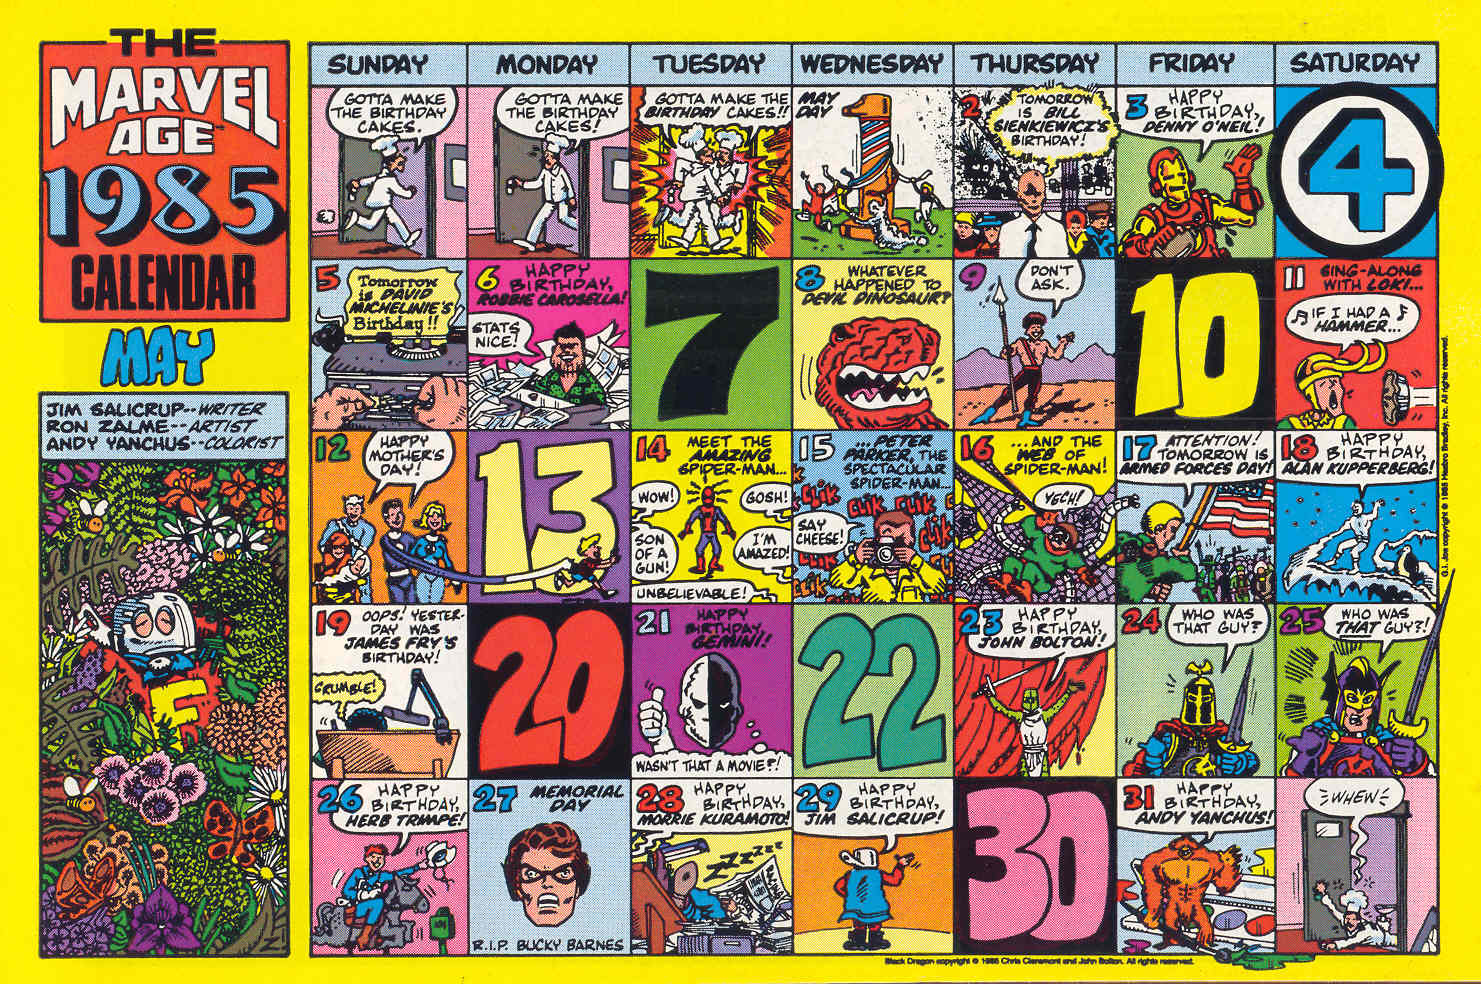 Marvel Comics Of The 1980s 1985 Marvel Age May Calendar